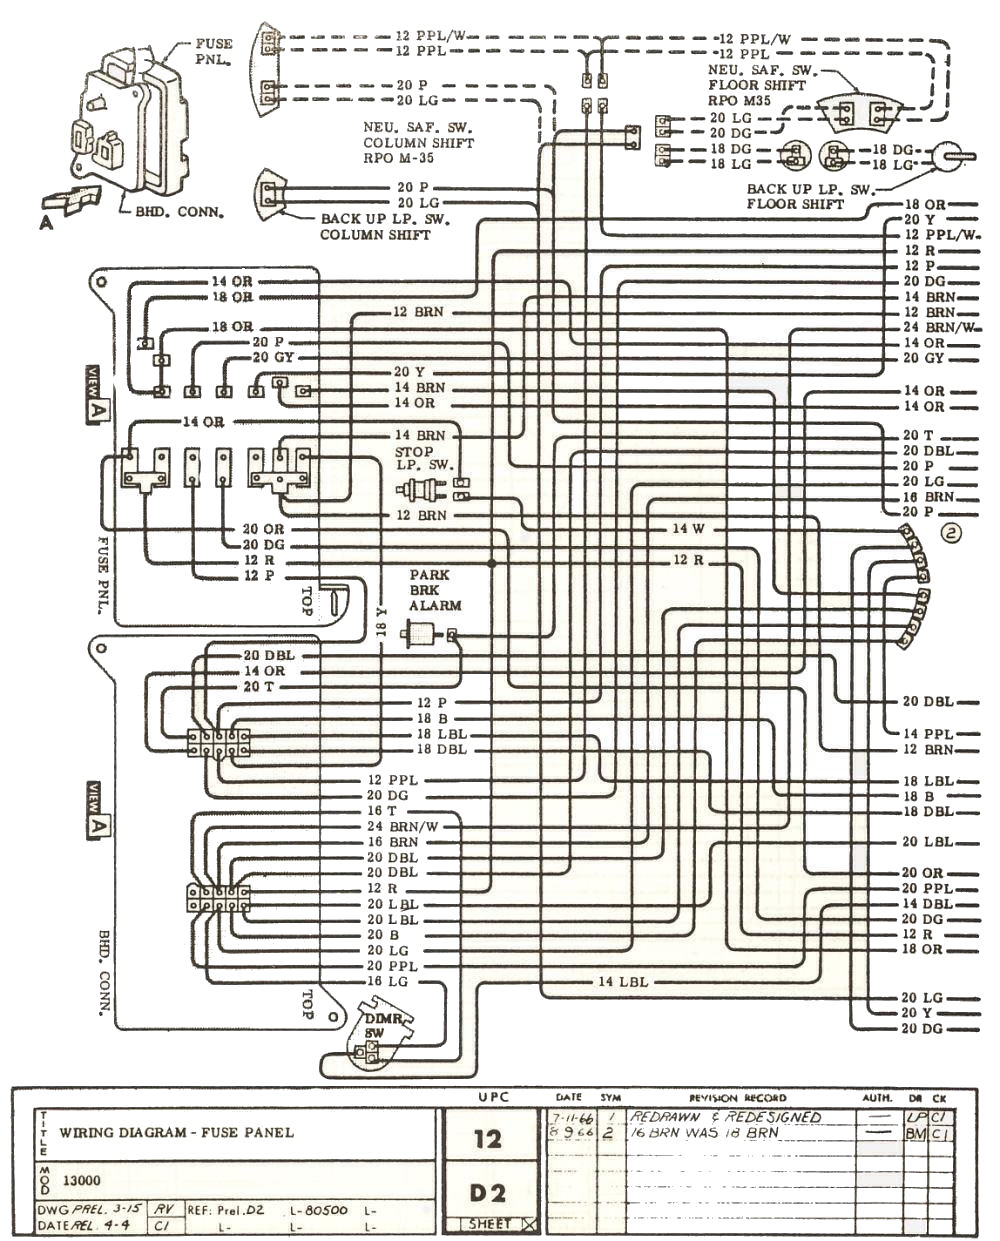 Diagram 1966 Chevelle Dash Wiring Harness For File Wm72725 67 Pontiac Tach